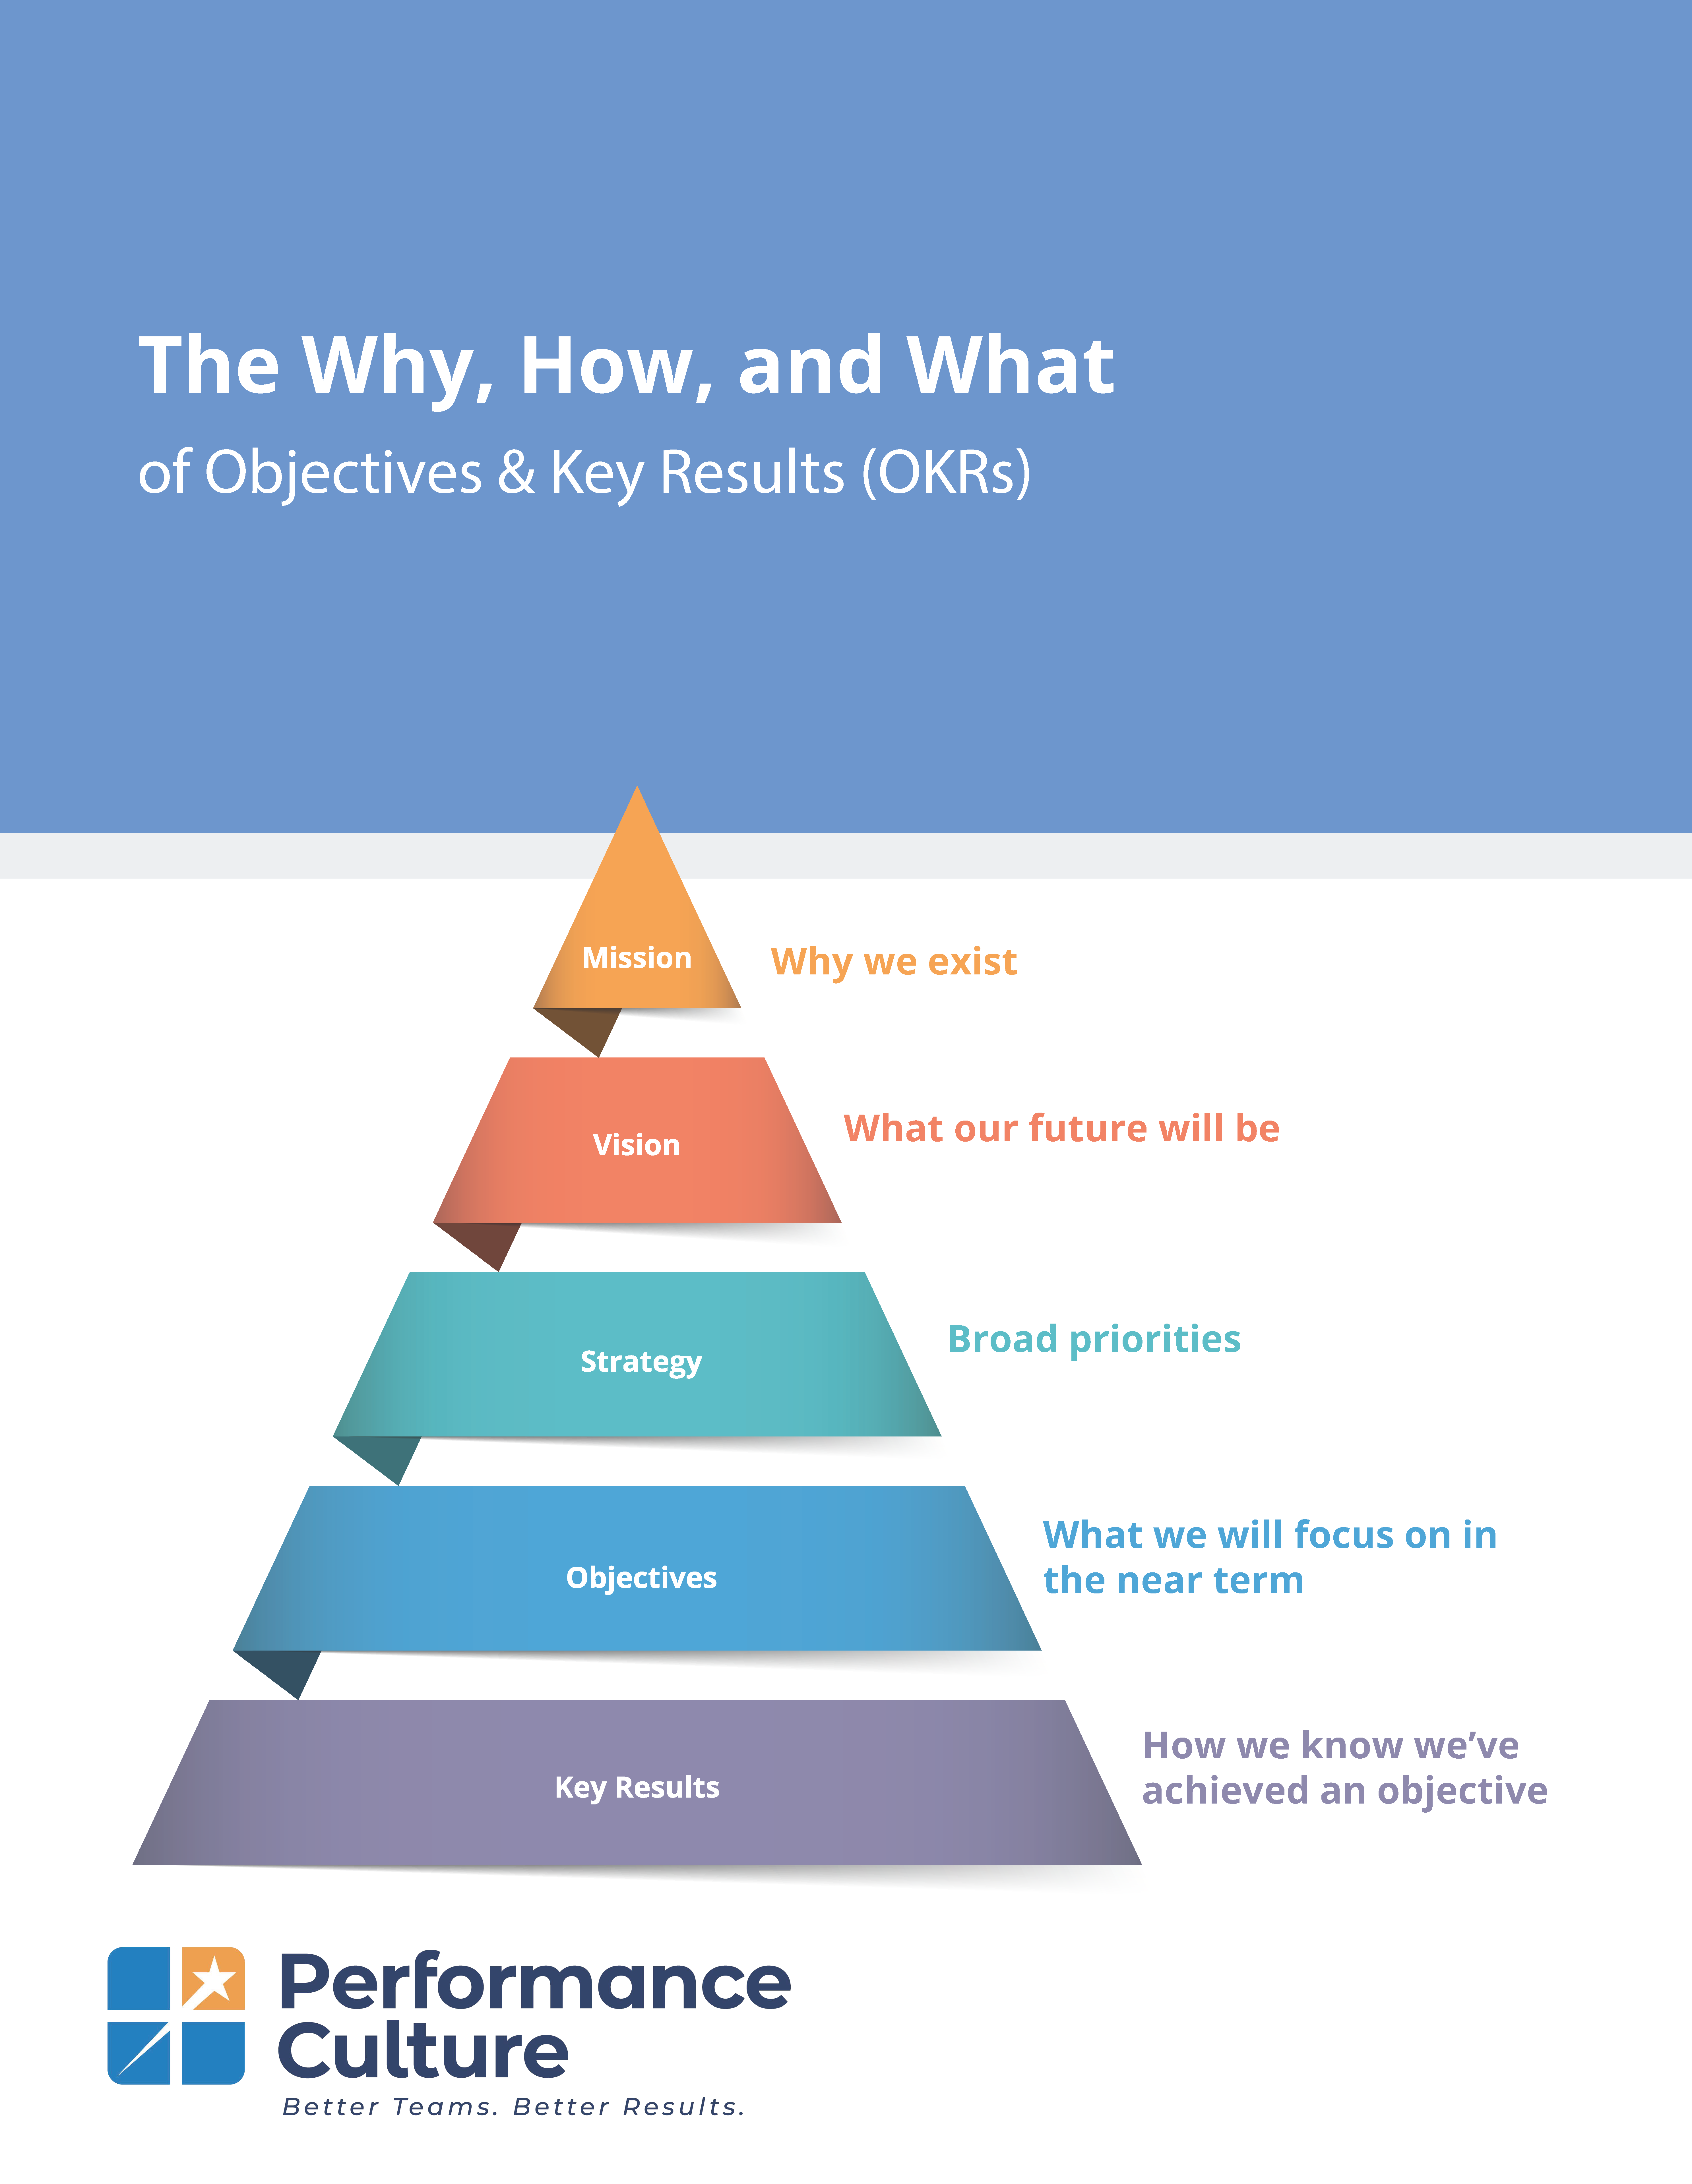 The Why, How, and What of Objectives & Key Results (OKRs)